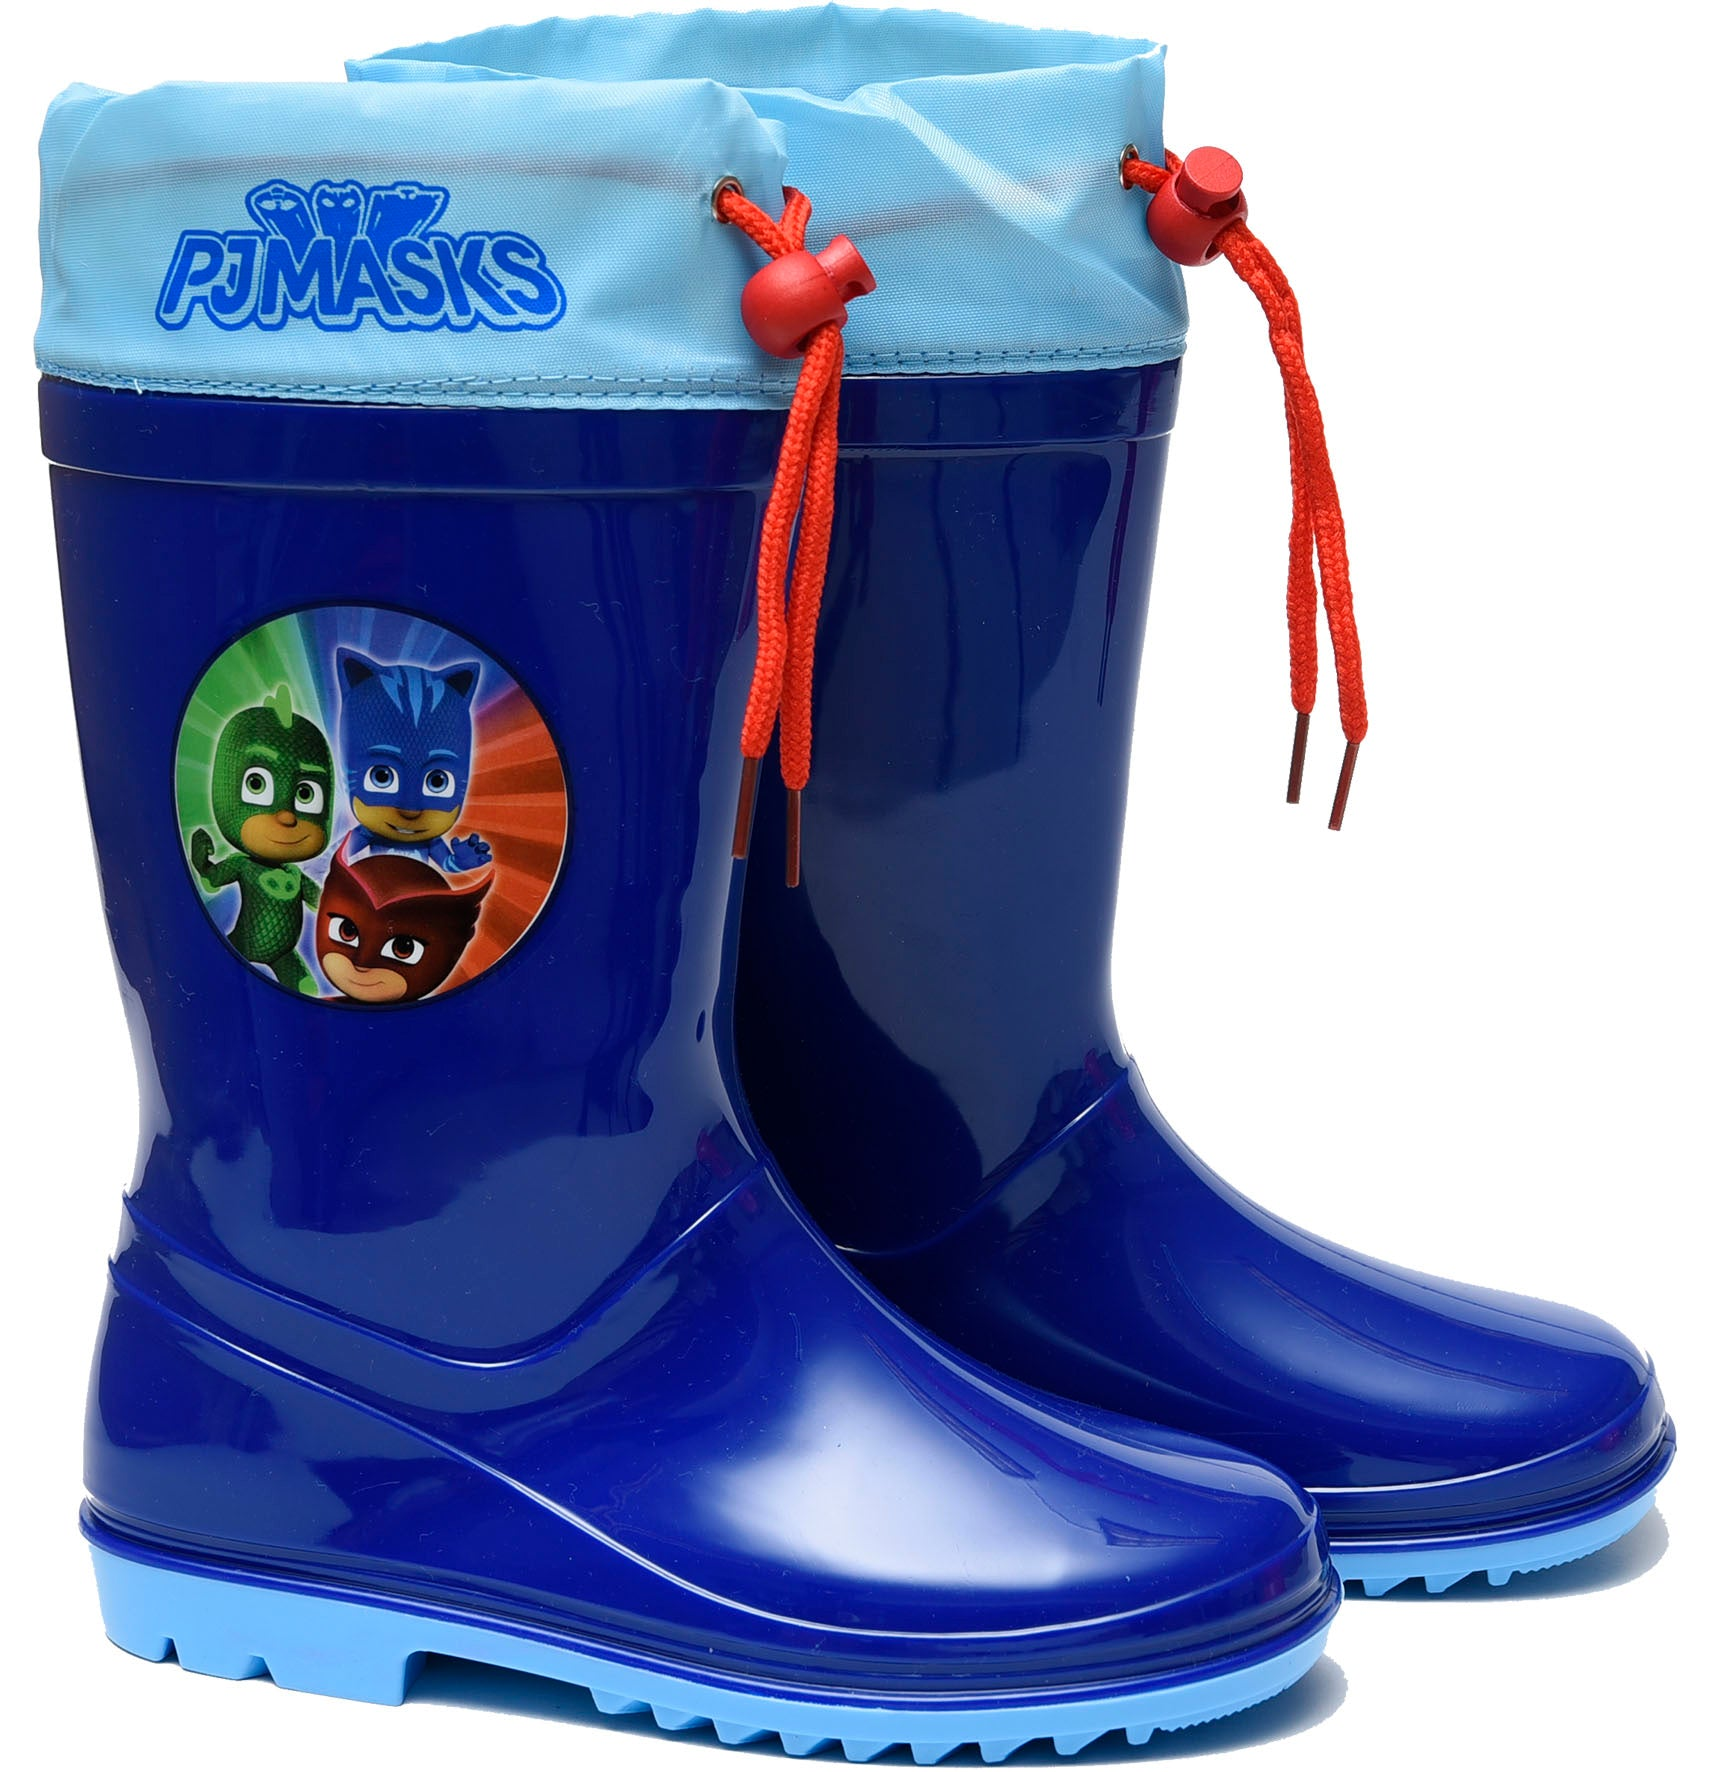 PJ Masks rainboots in blue with logo and drawstring